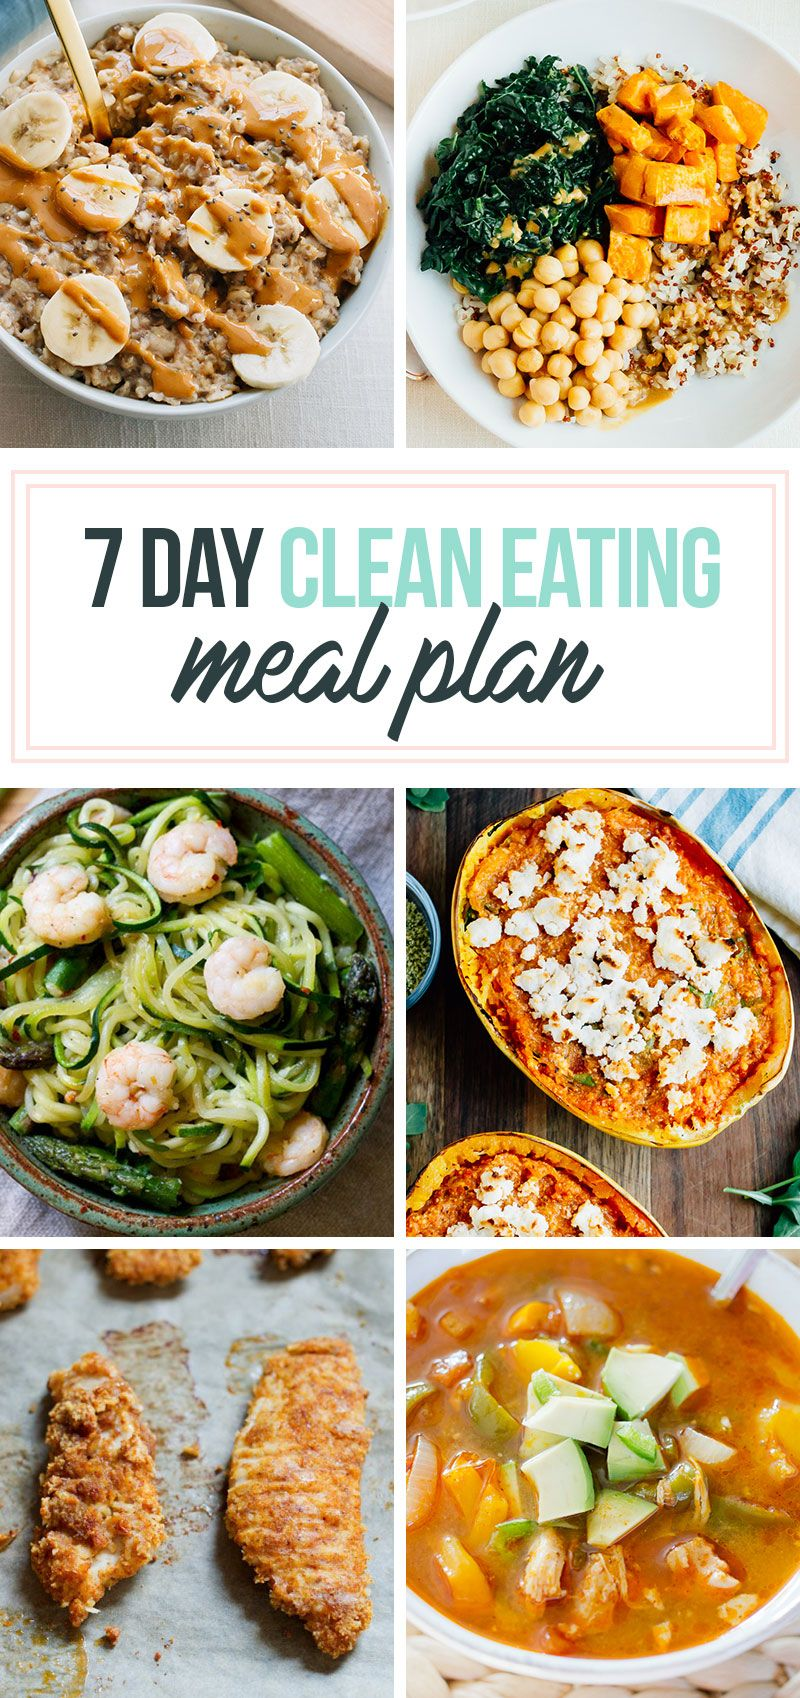 Food ideas for healthy eating - 7 Day Healthy Meal Plan Shopping List